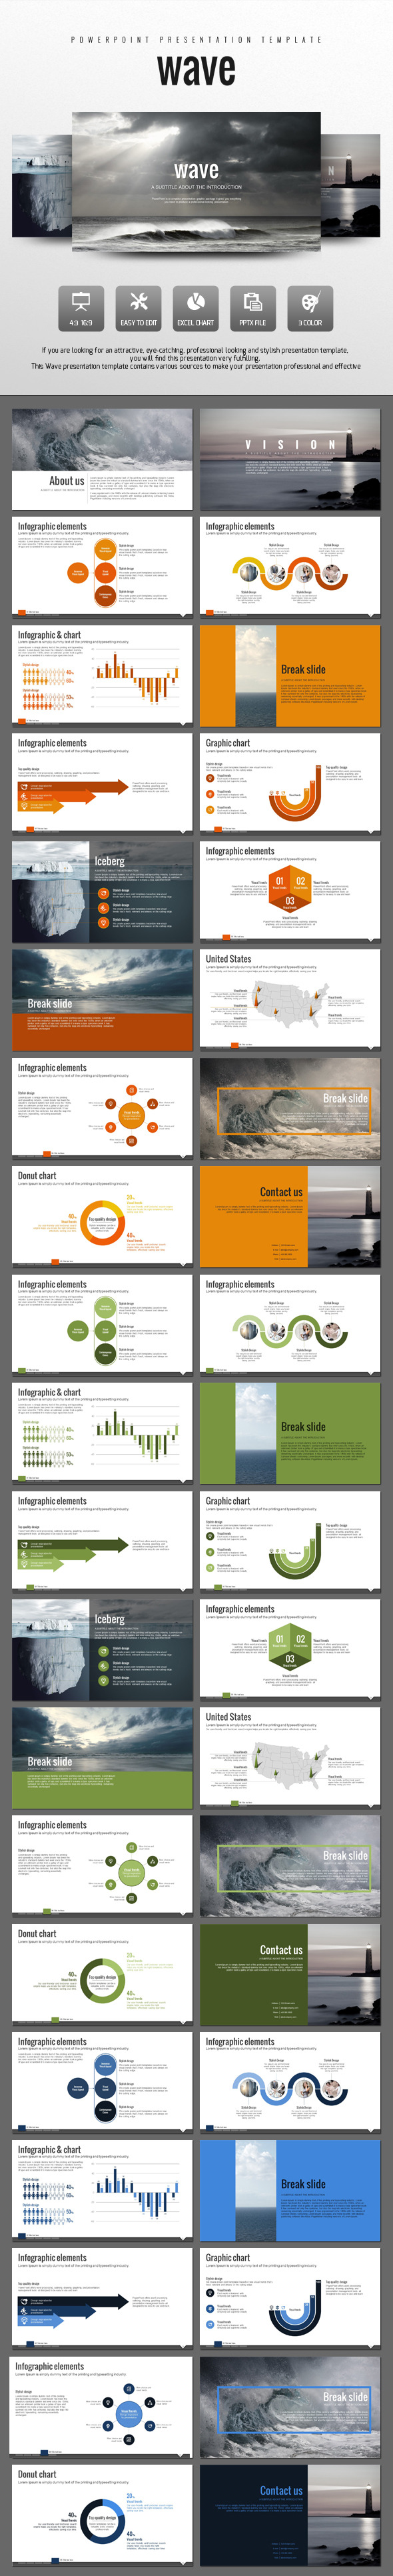 Wave - Creative PowerPoint Templates